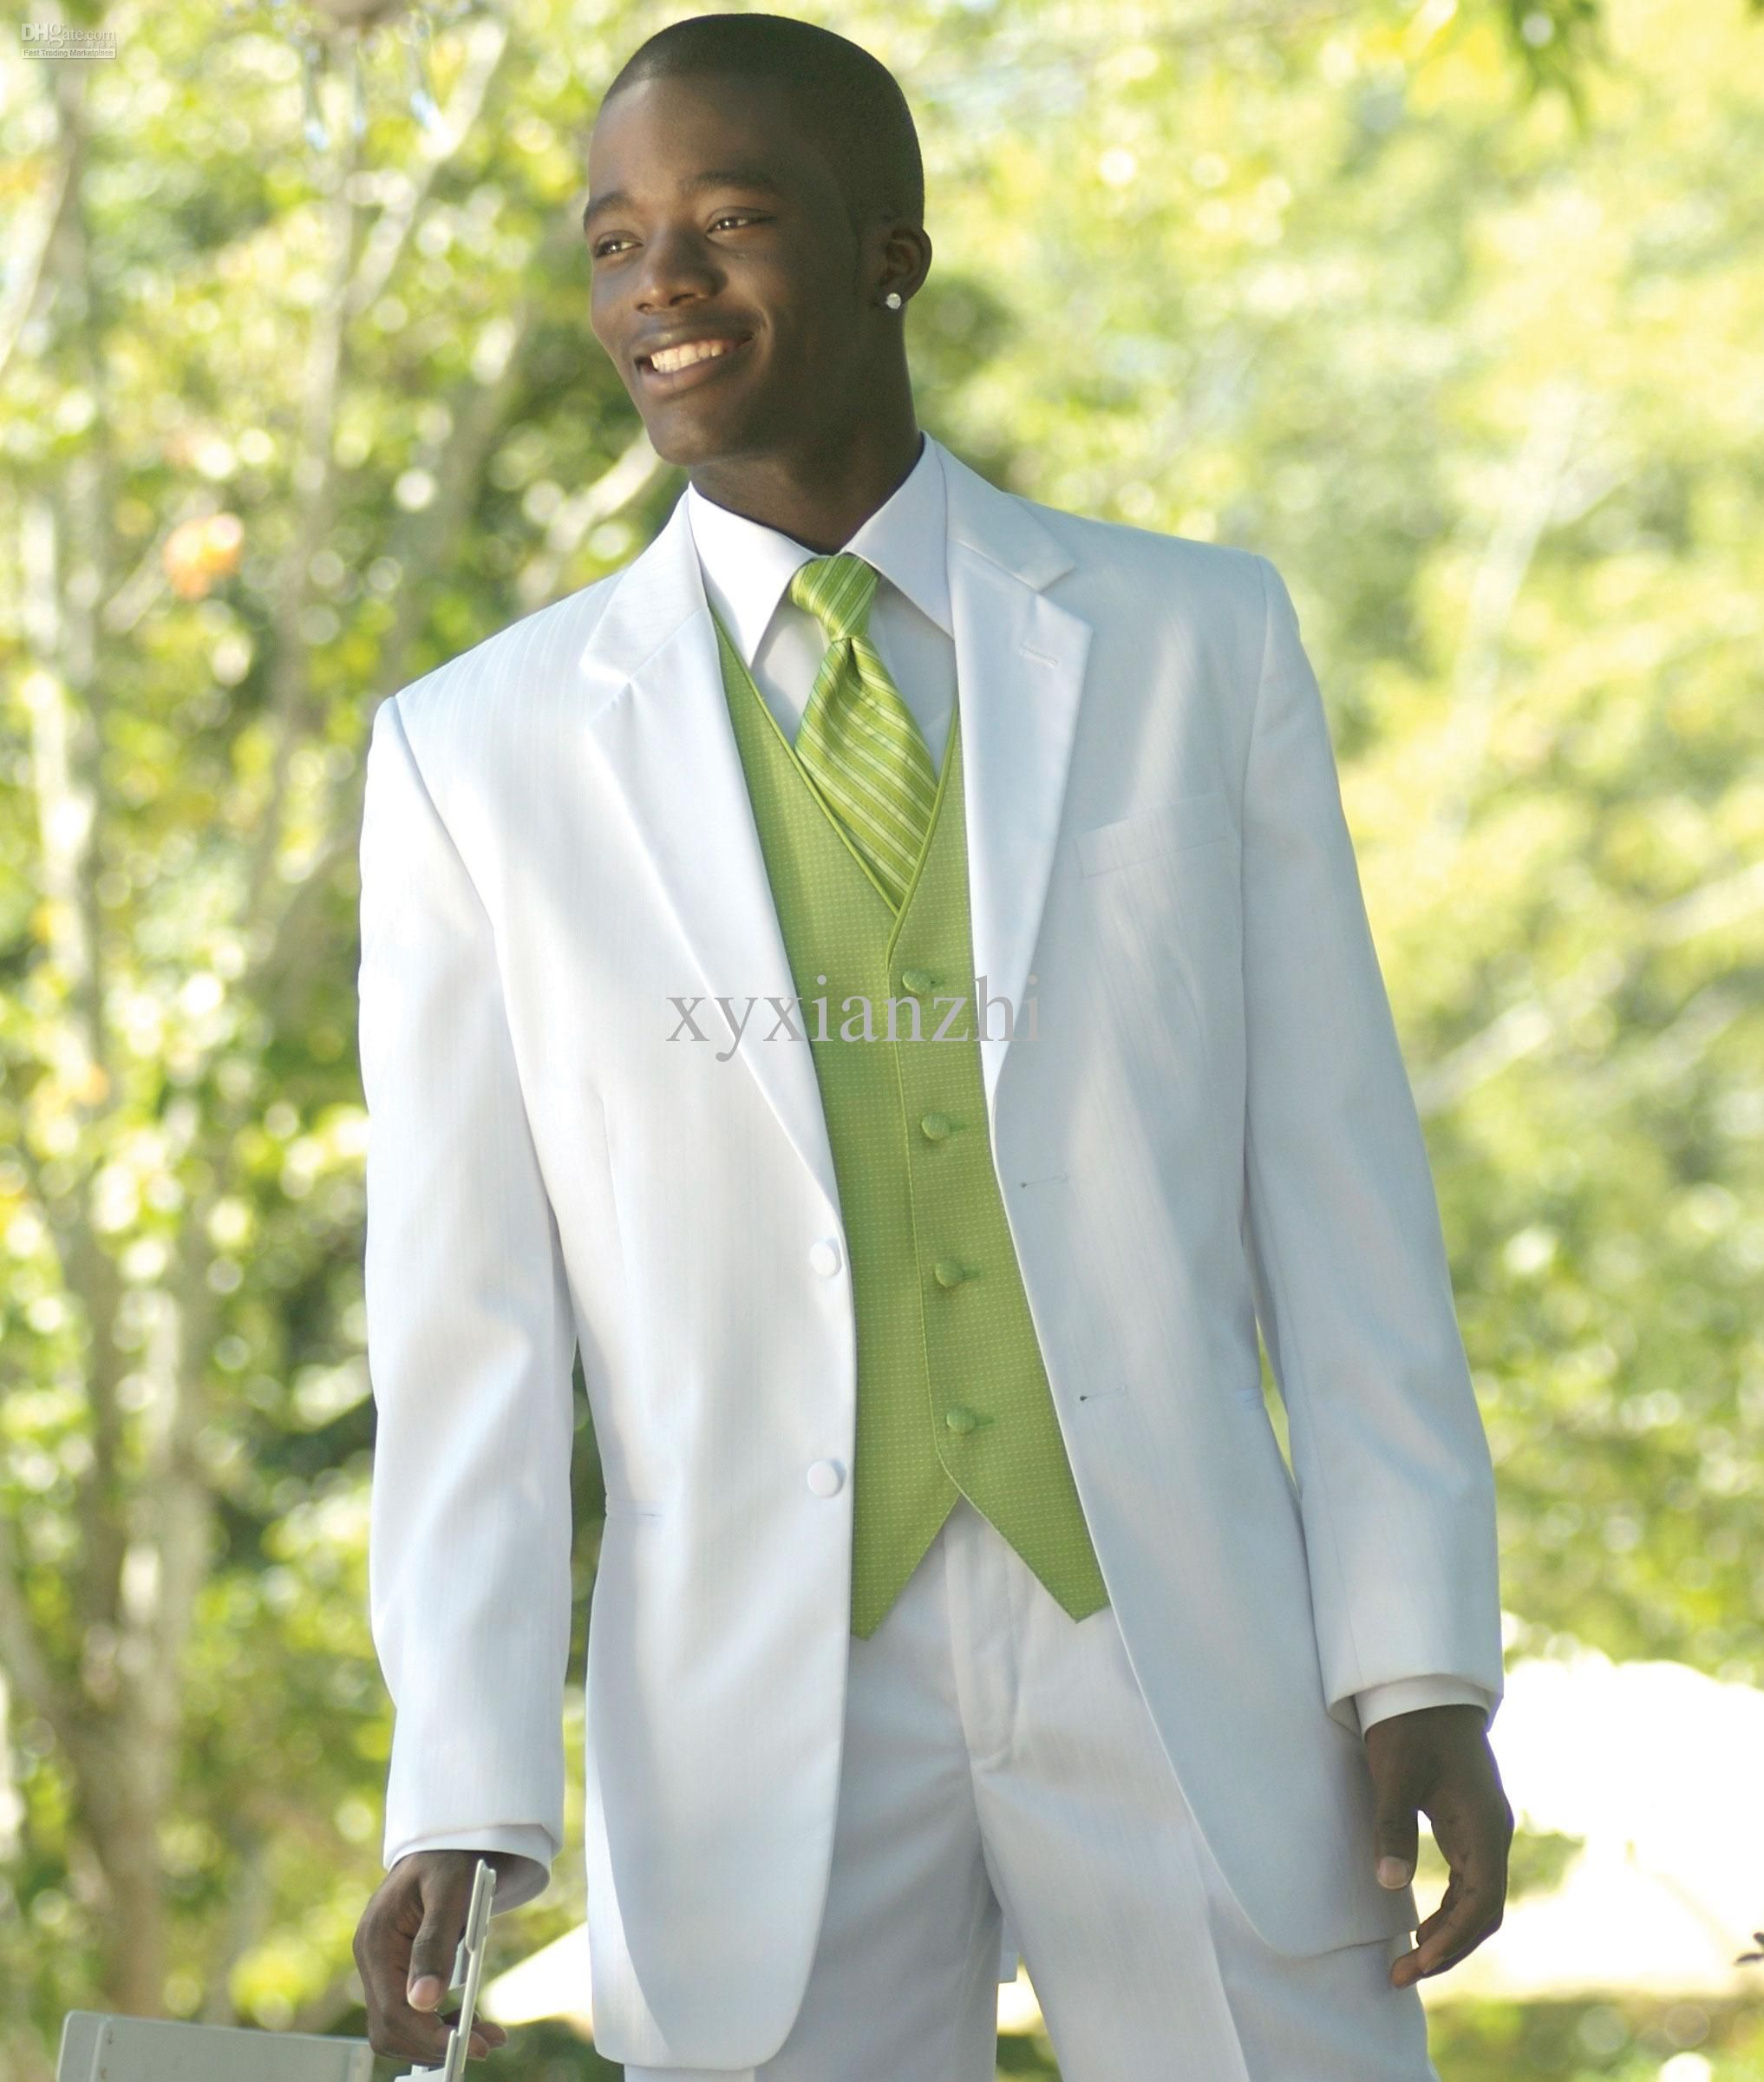 groom\'s attire for spring wedding - Google Search | Wedding Attire ...